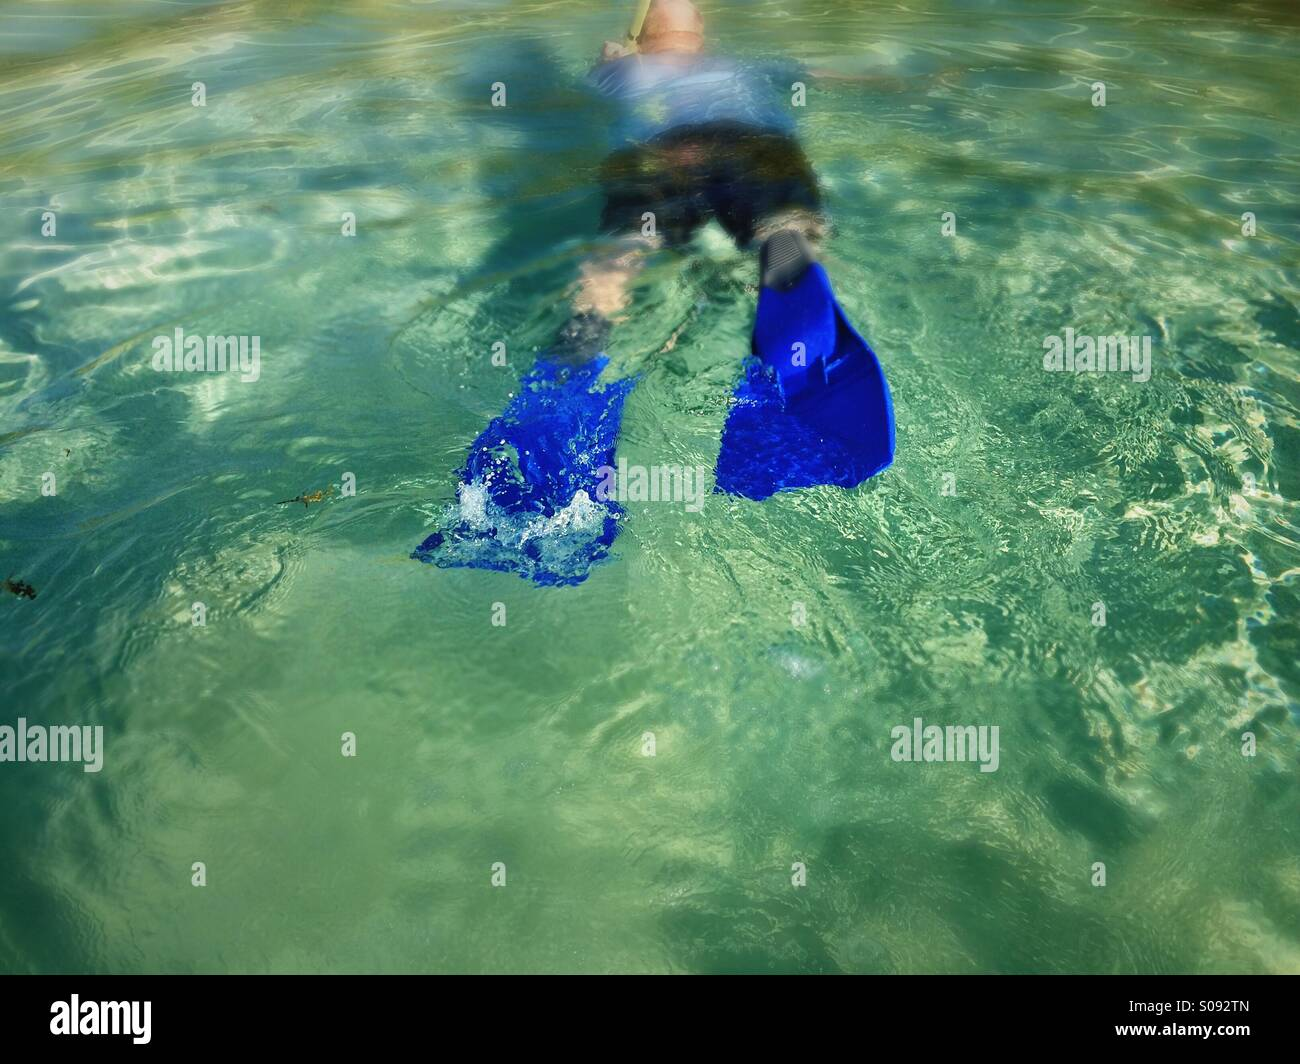 Snorkeling in Belize, South Water Caye - Stock Image